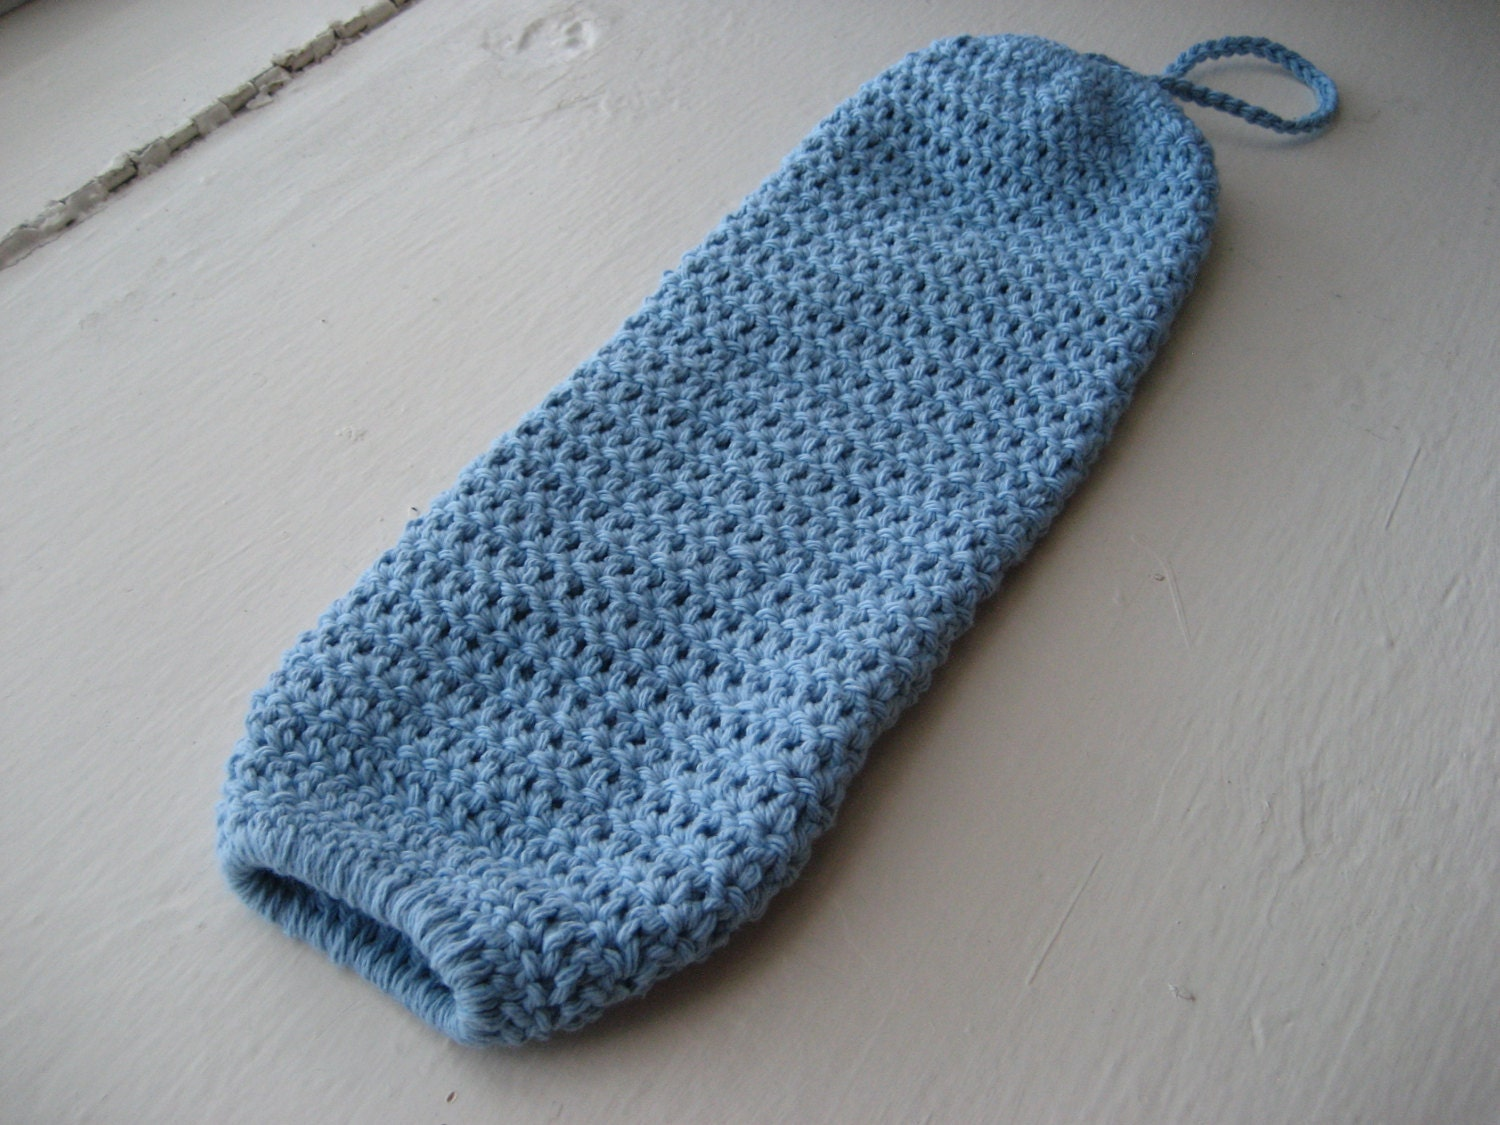 Crochet Pattern Plastic Bag Holder : Crocheted Hanging Grocery Bag Holder Light Blue